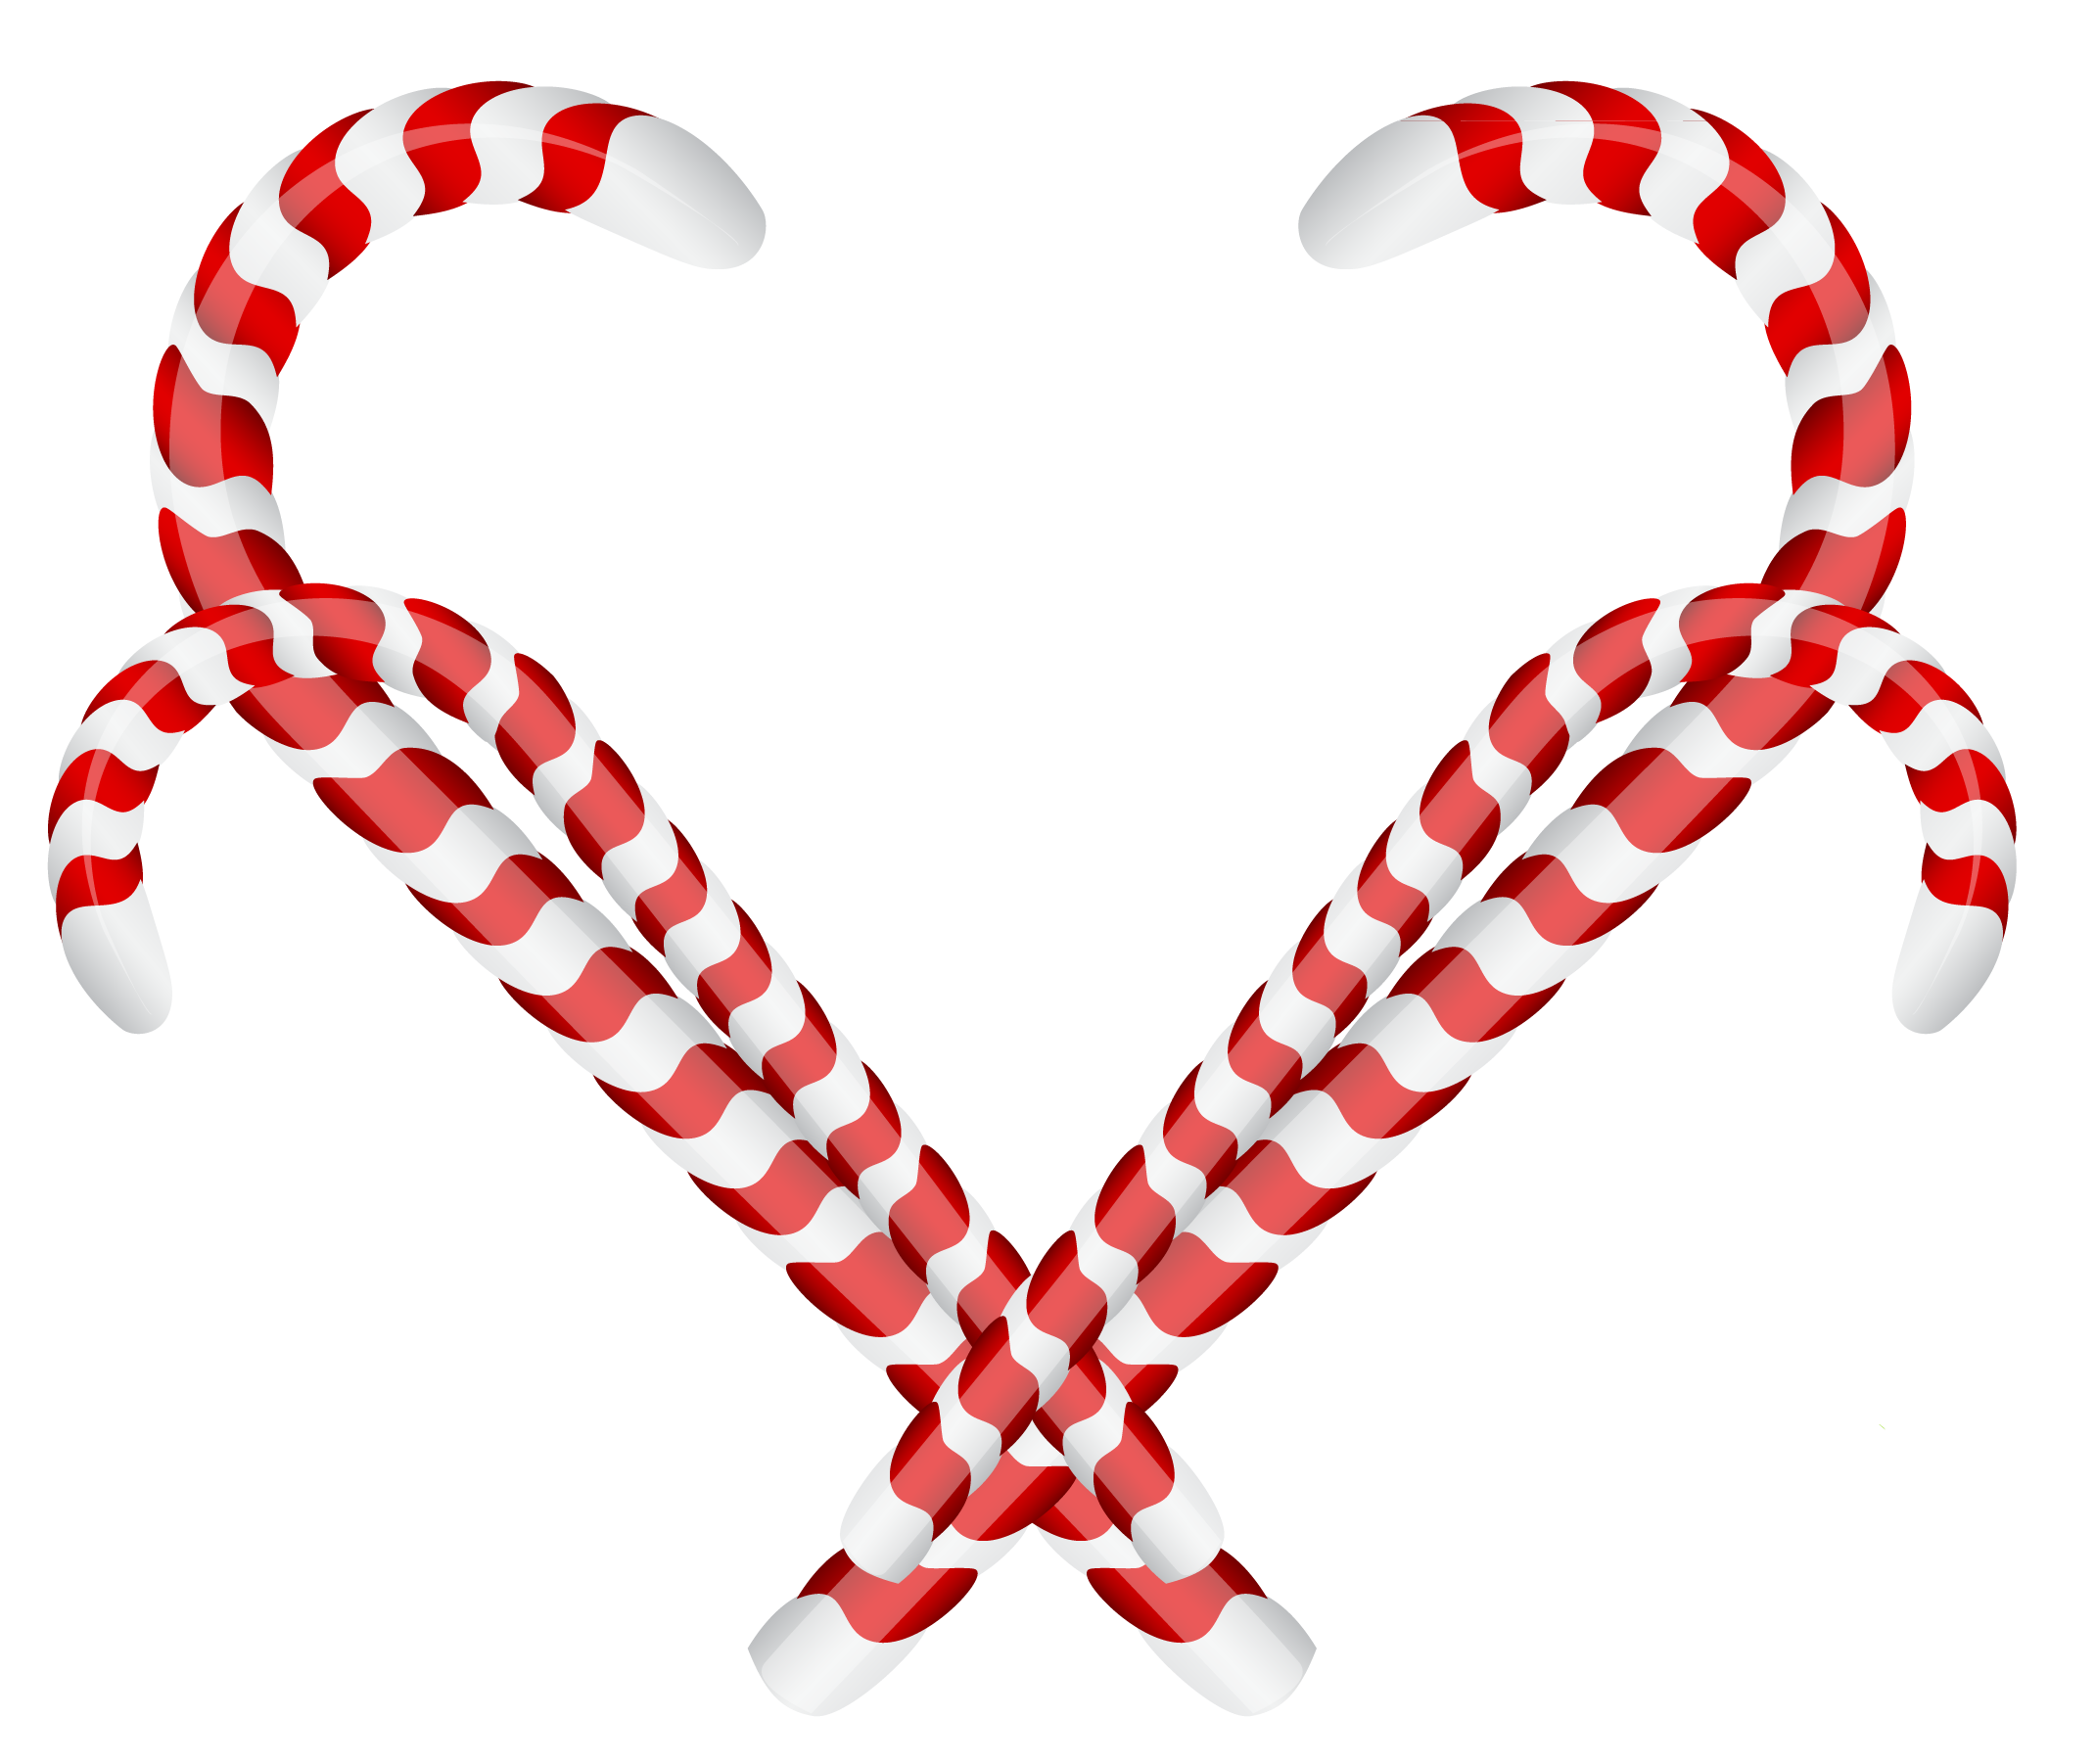 Clipart hearts christmas. Candy cane ornament png